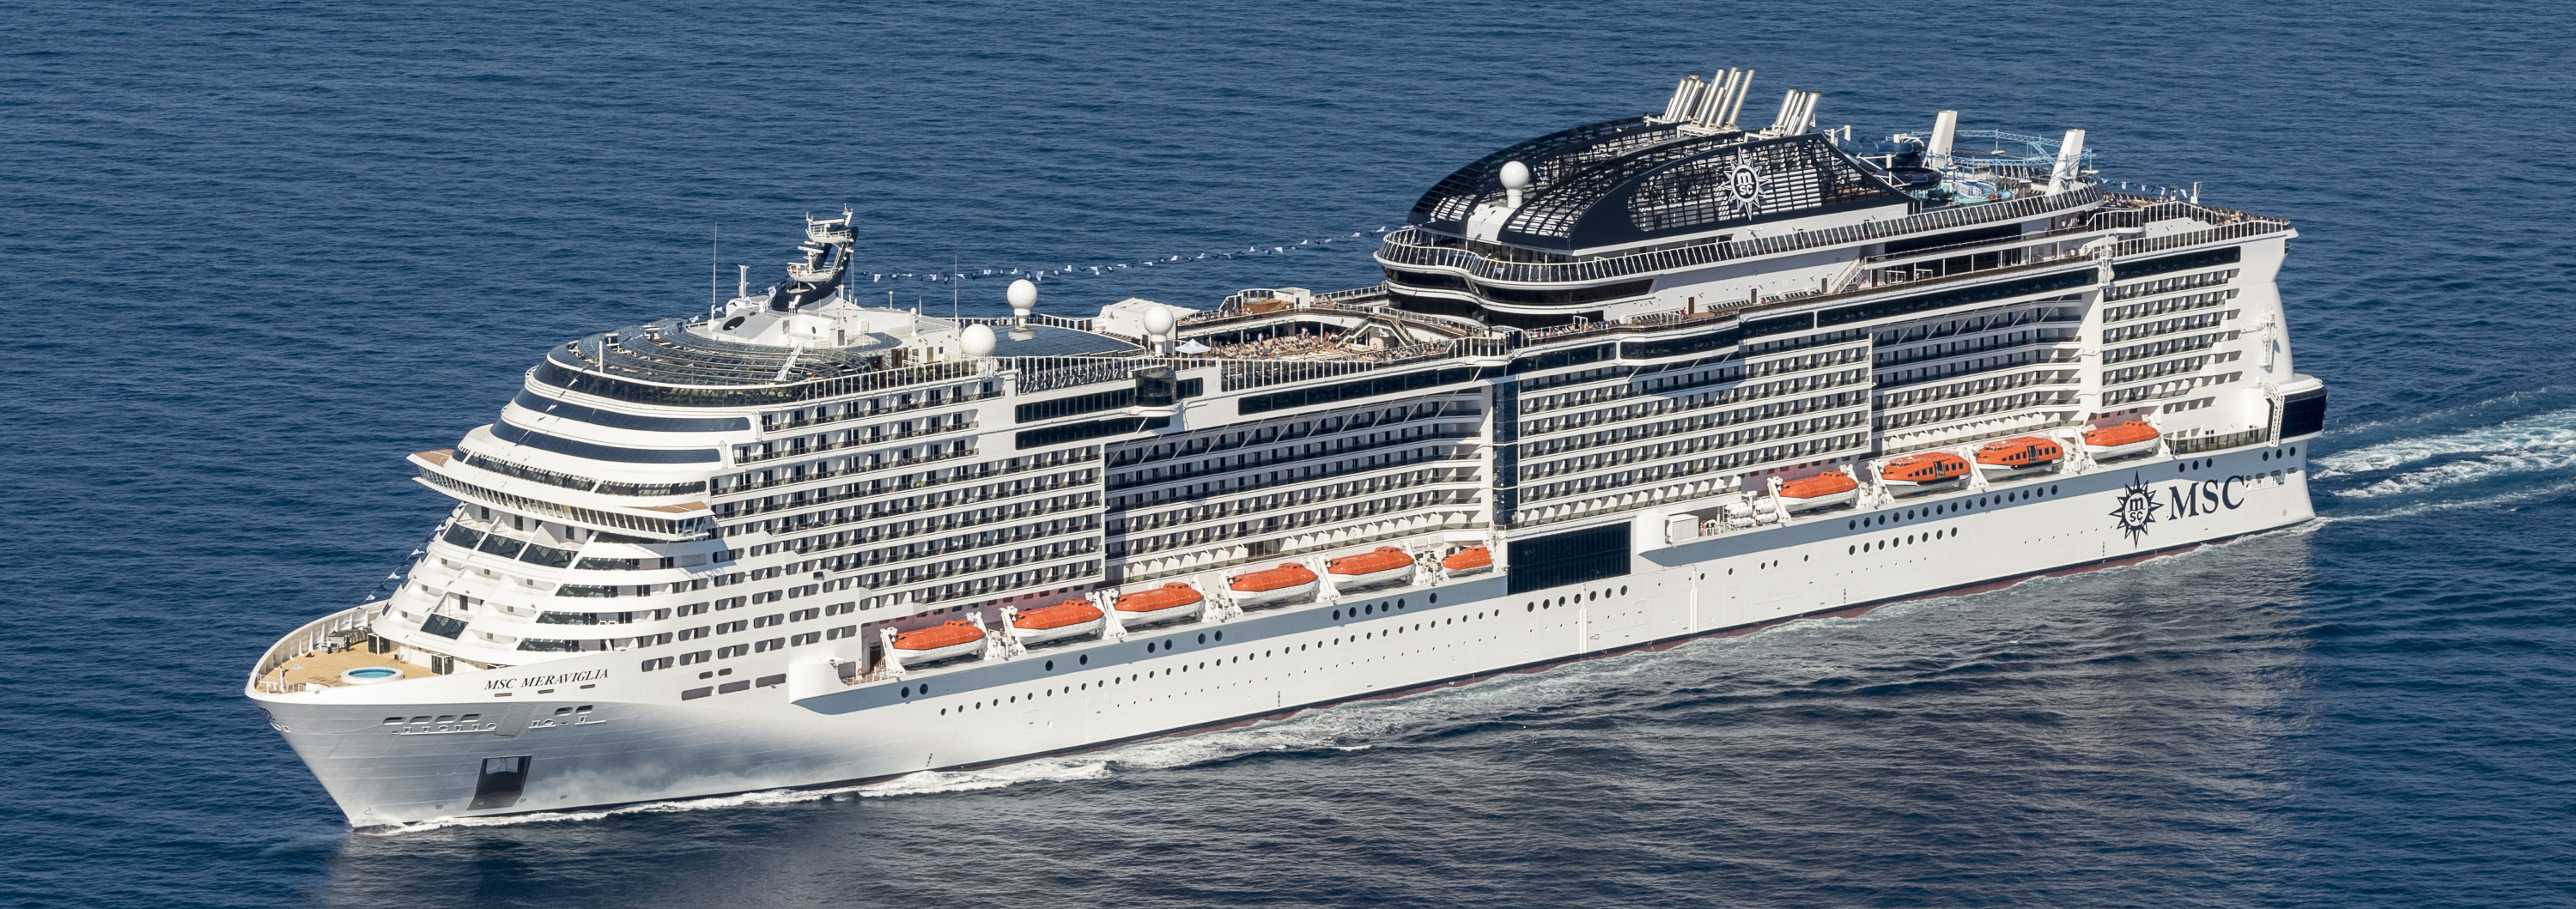 Northern Europe Cruise on MSC Meraviglia